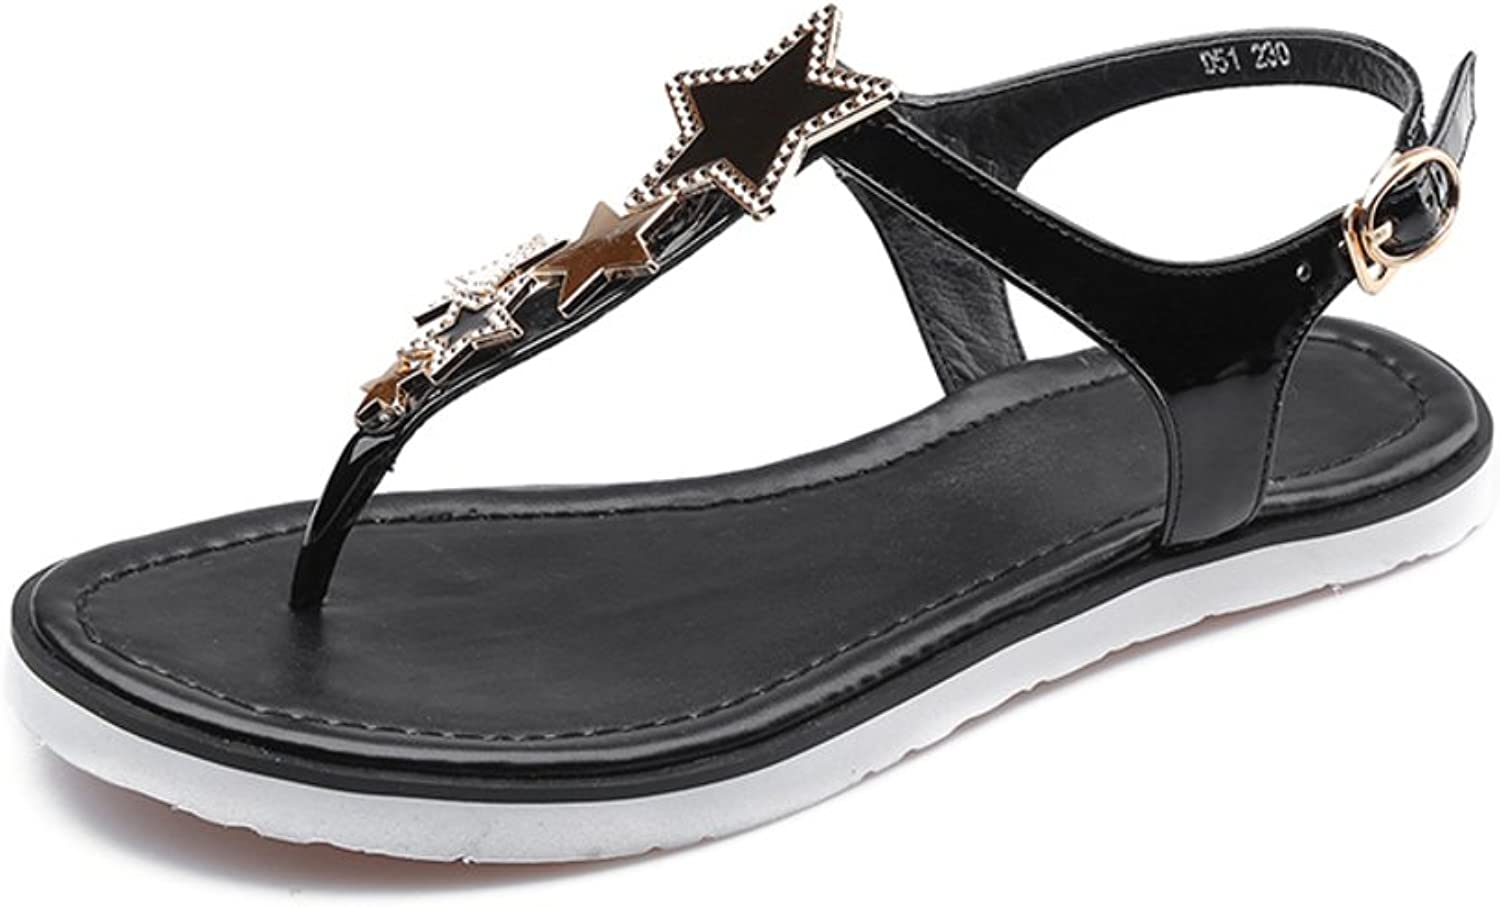 Huhuj First Layer Leather Stars in Summer shoes Comfortable Flat Sandals Low toeT Sandals Fashion Lady shoes